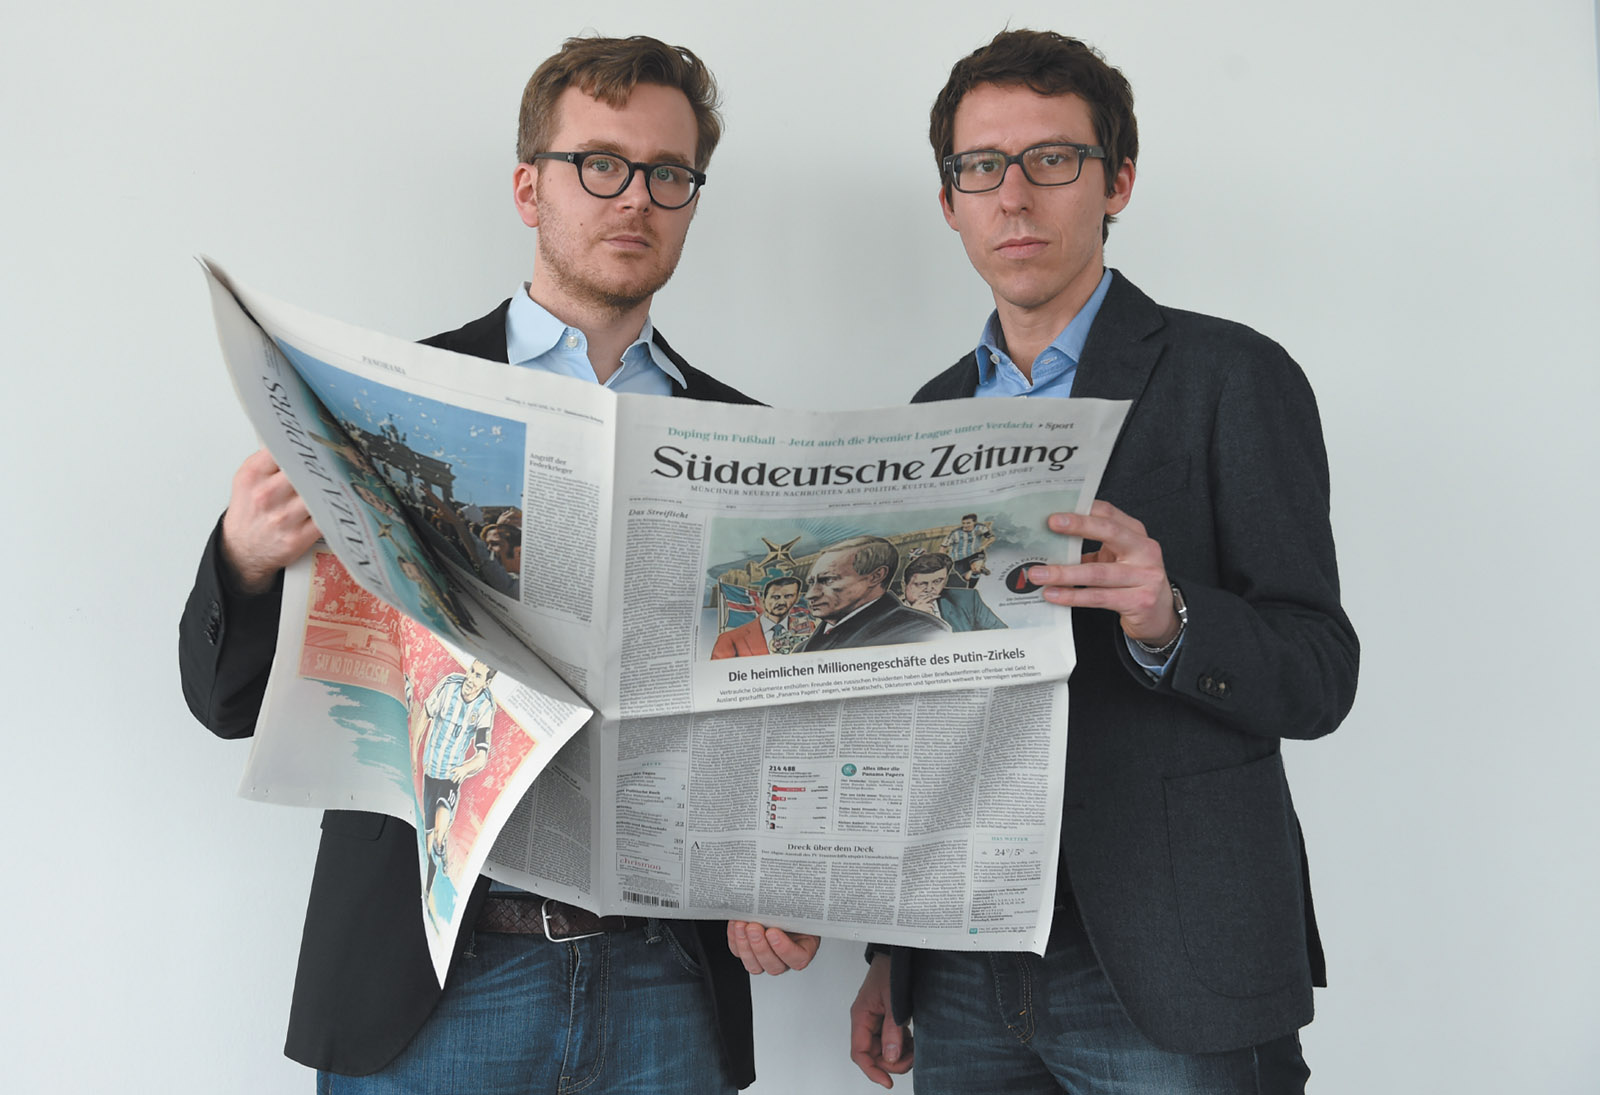 Frederik Obermaier and Bastian Obermayer, the Süddeutsche Zeitung journalists who have led the investigation of the Panama Papers, Munich, April 2016